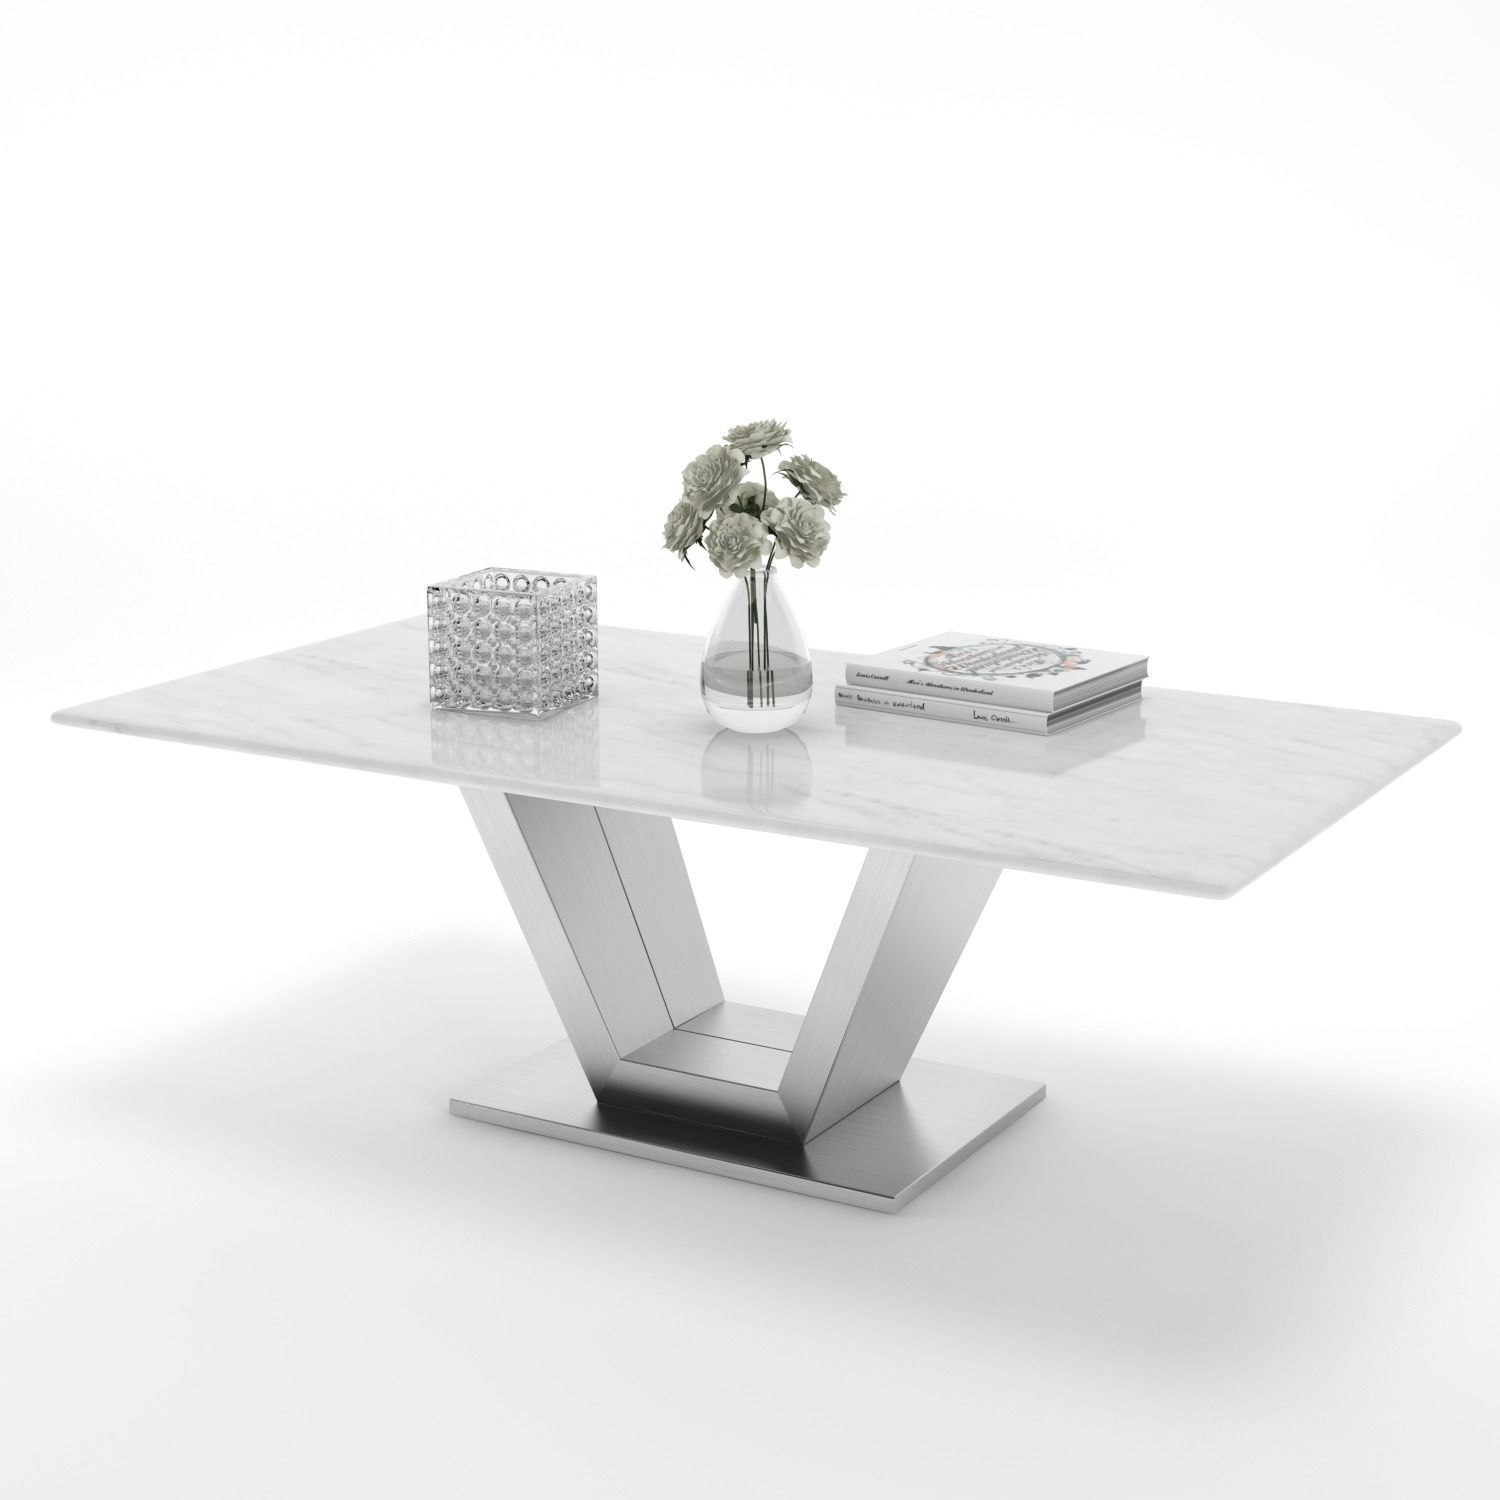 Port coffee table and Port end table